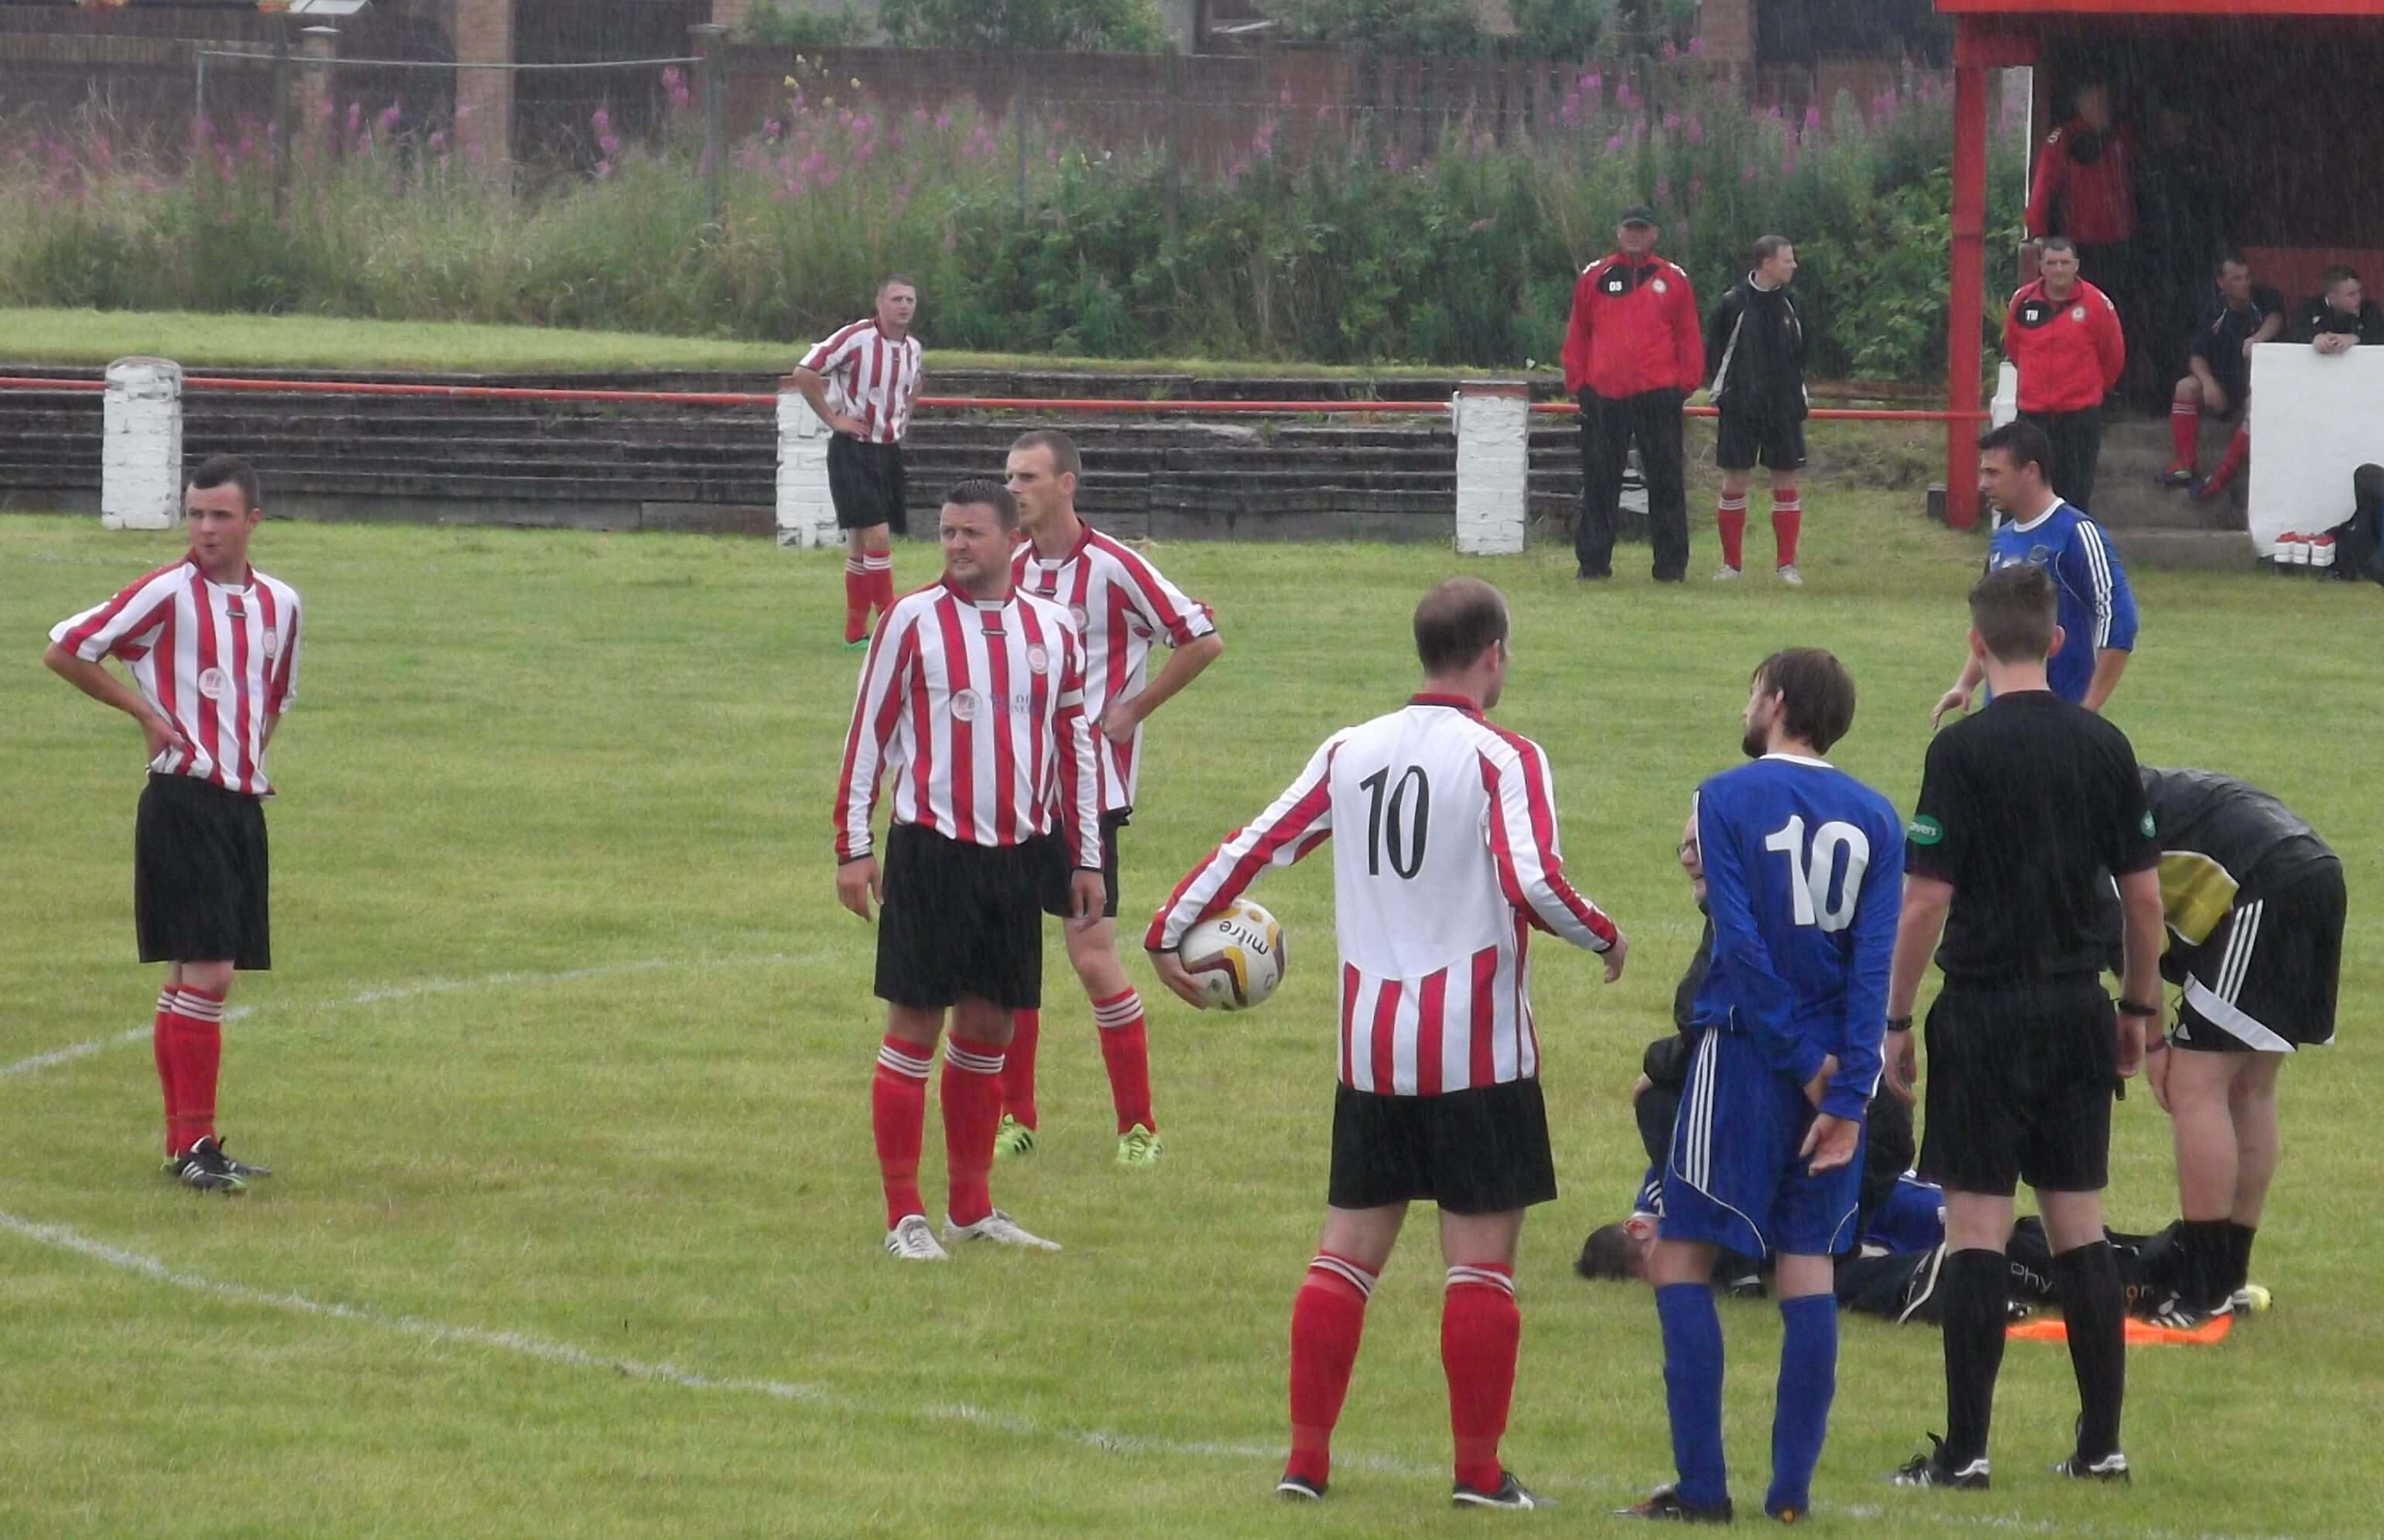 Players from both sides look on anxiously at injured Abbey Vale player